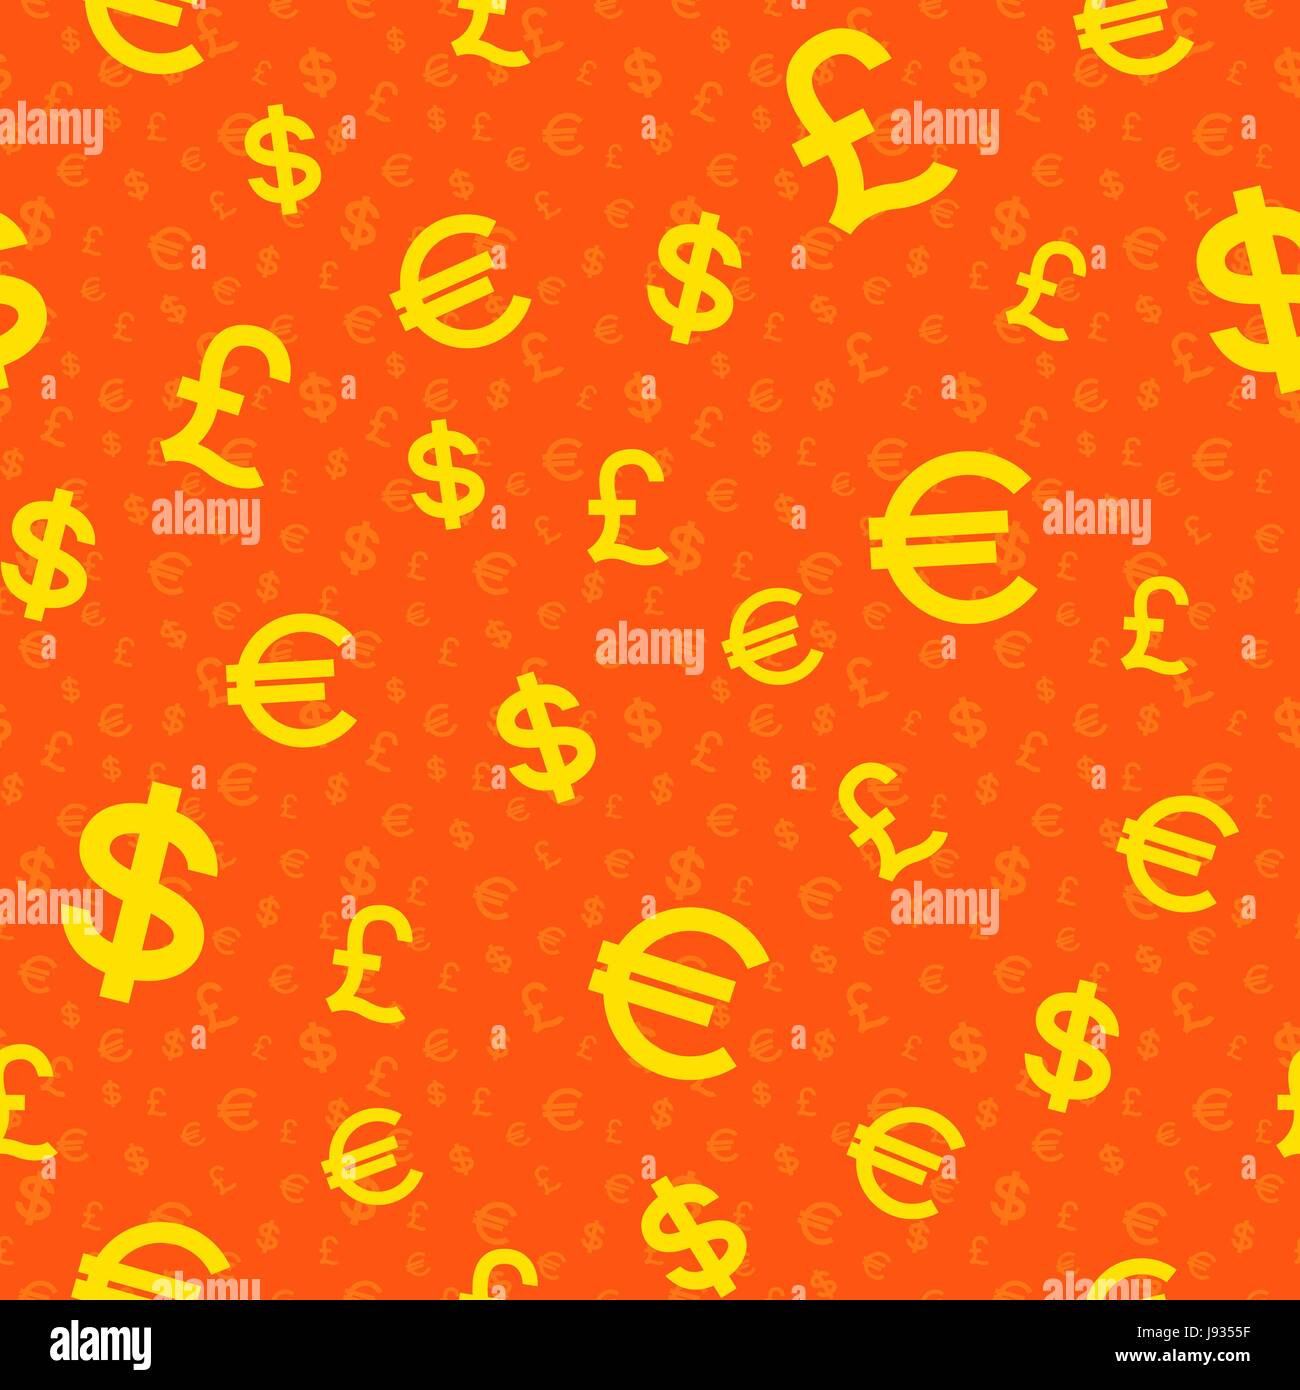 Dollars, Pounds and Euro seamless background, stylised vector illustration in yellow and orange colors - Stock Vector